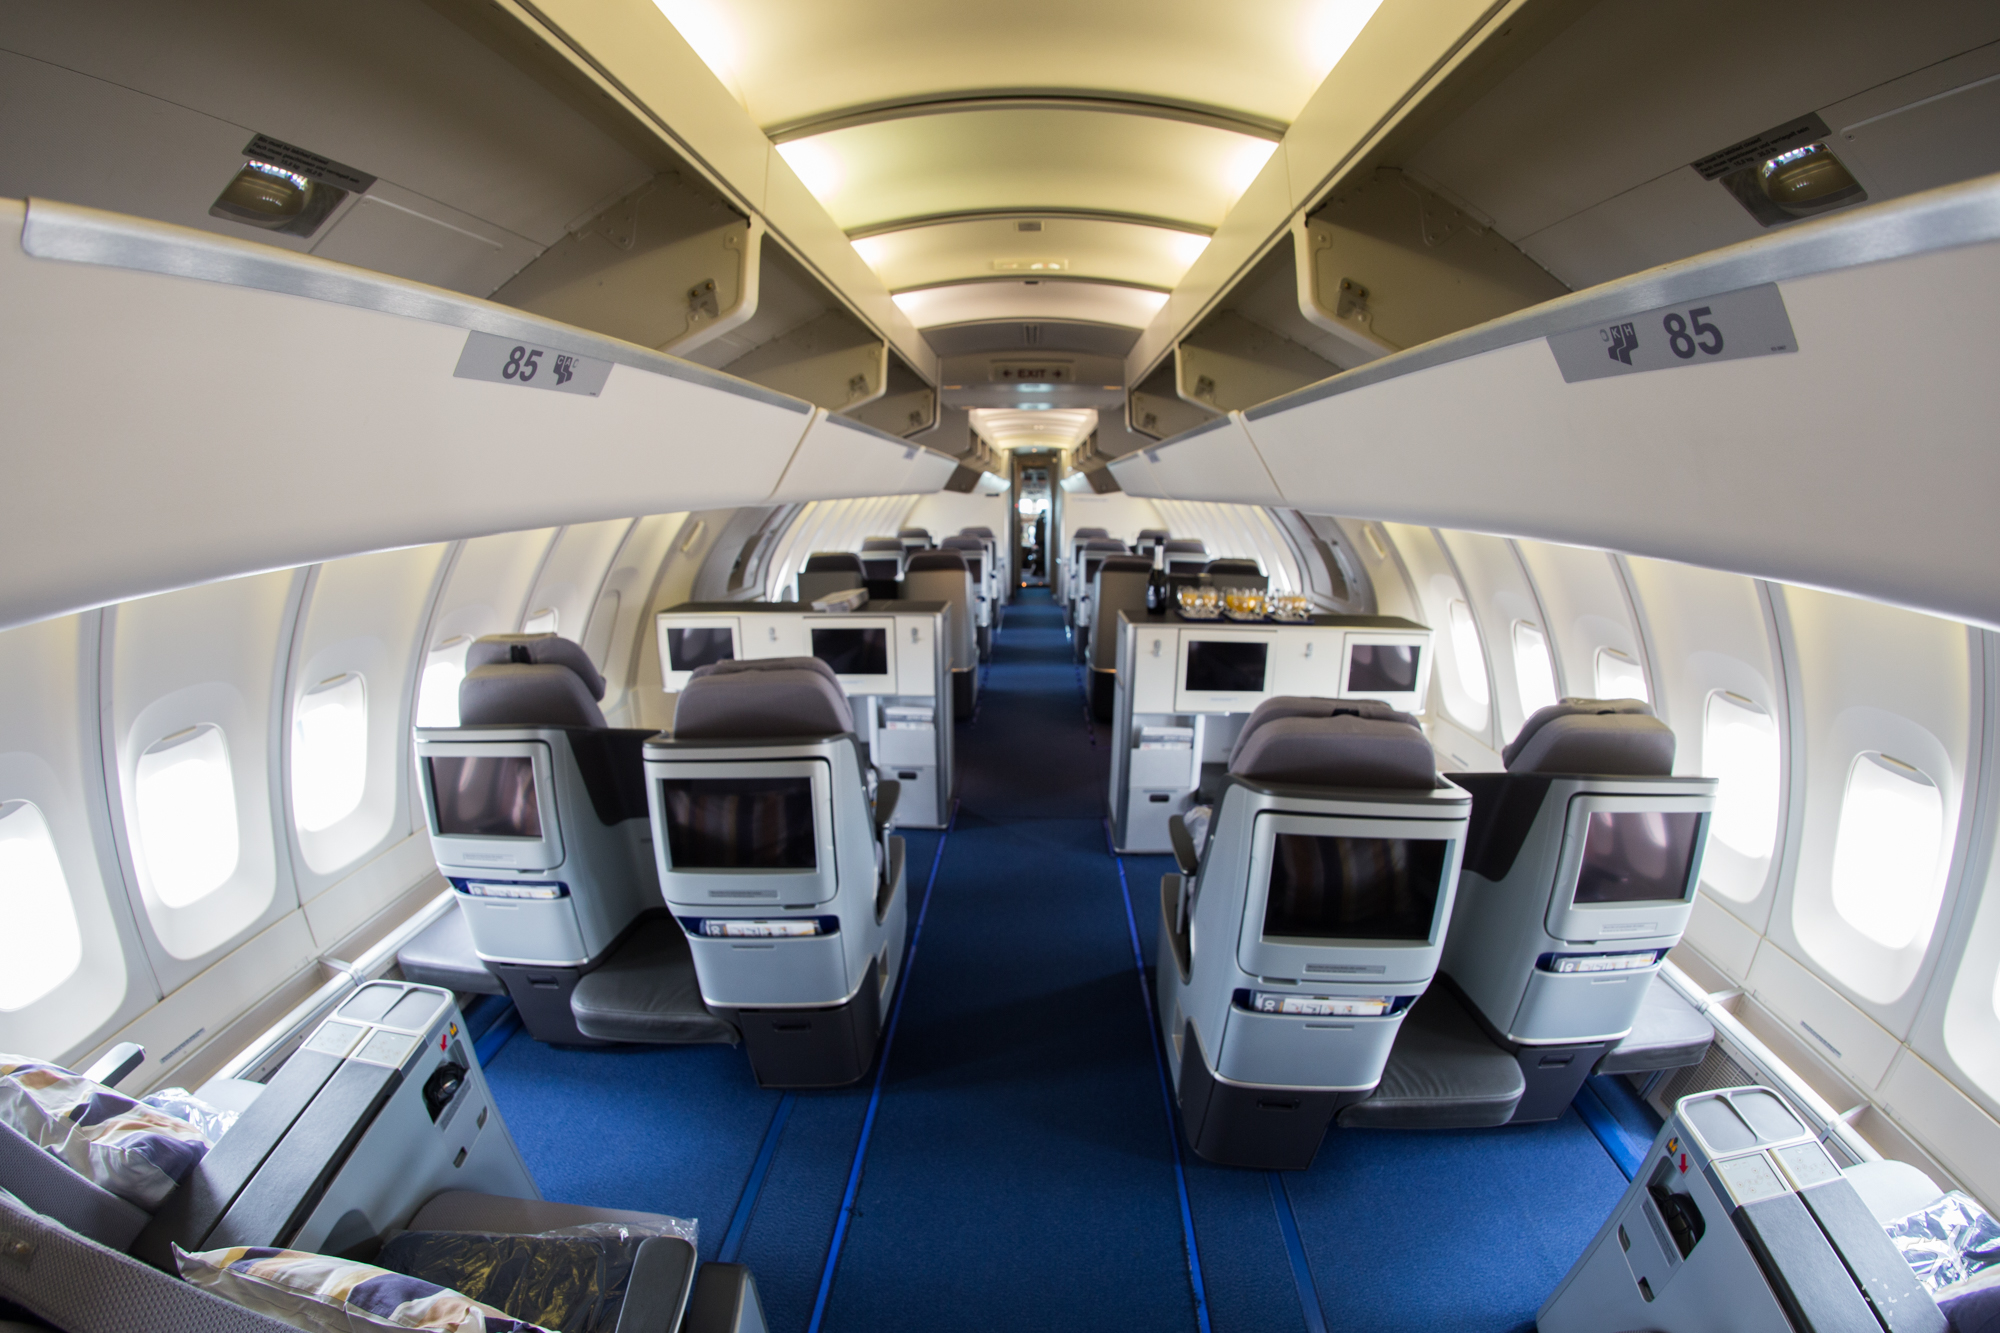 Lufthansa Business Class Kabine Boeing 747-400 Upper Deck